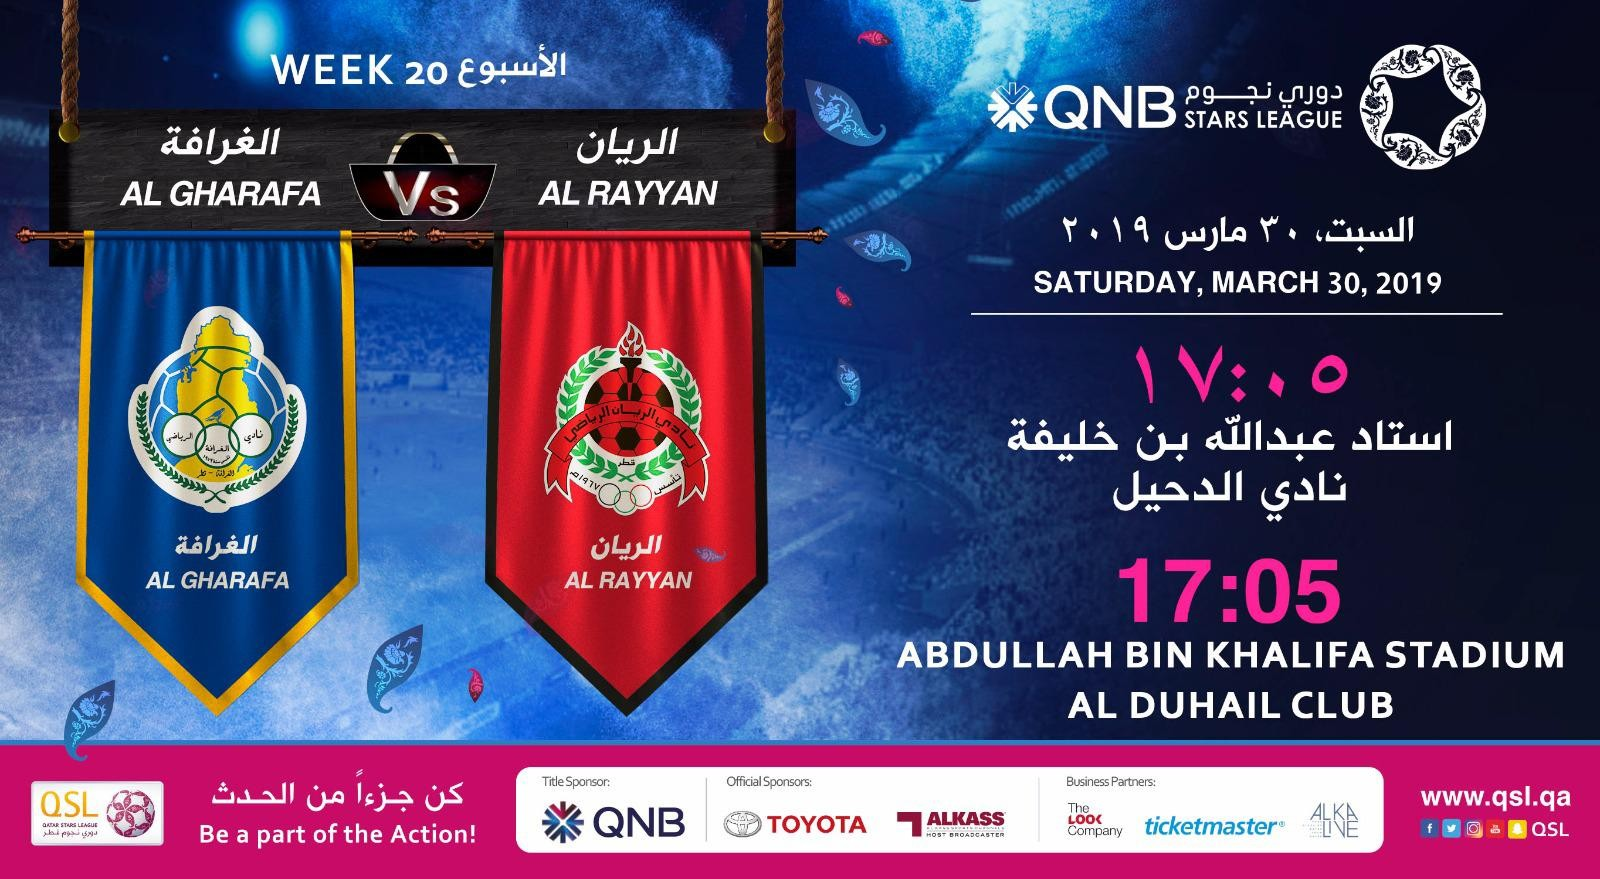 QNB Stars League Week 20 — Al Gharafa vs Al Rayyan